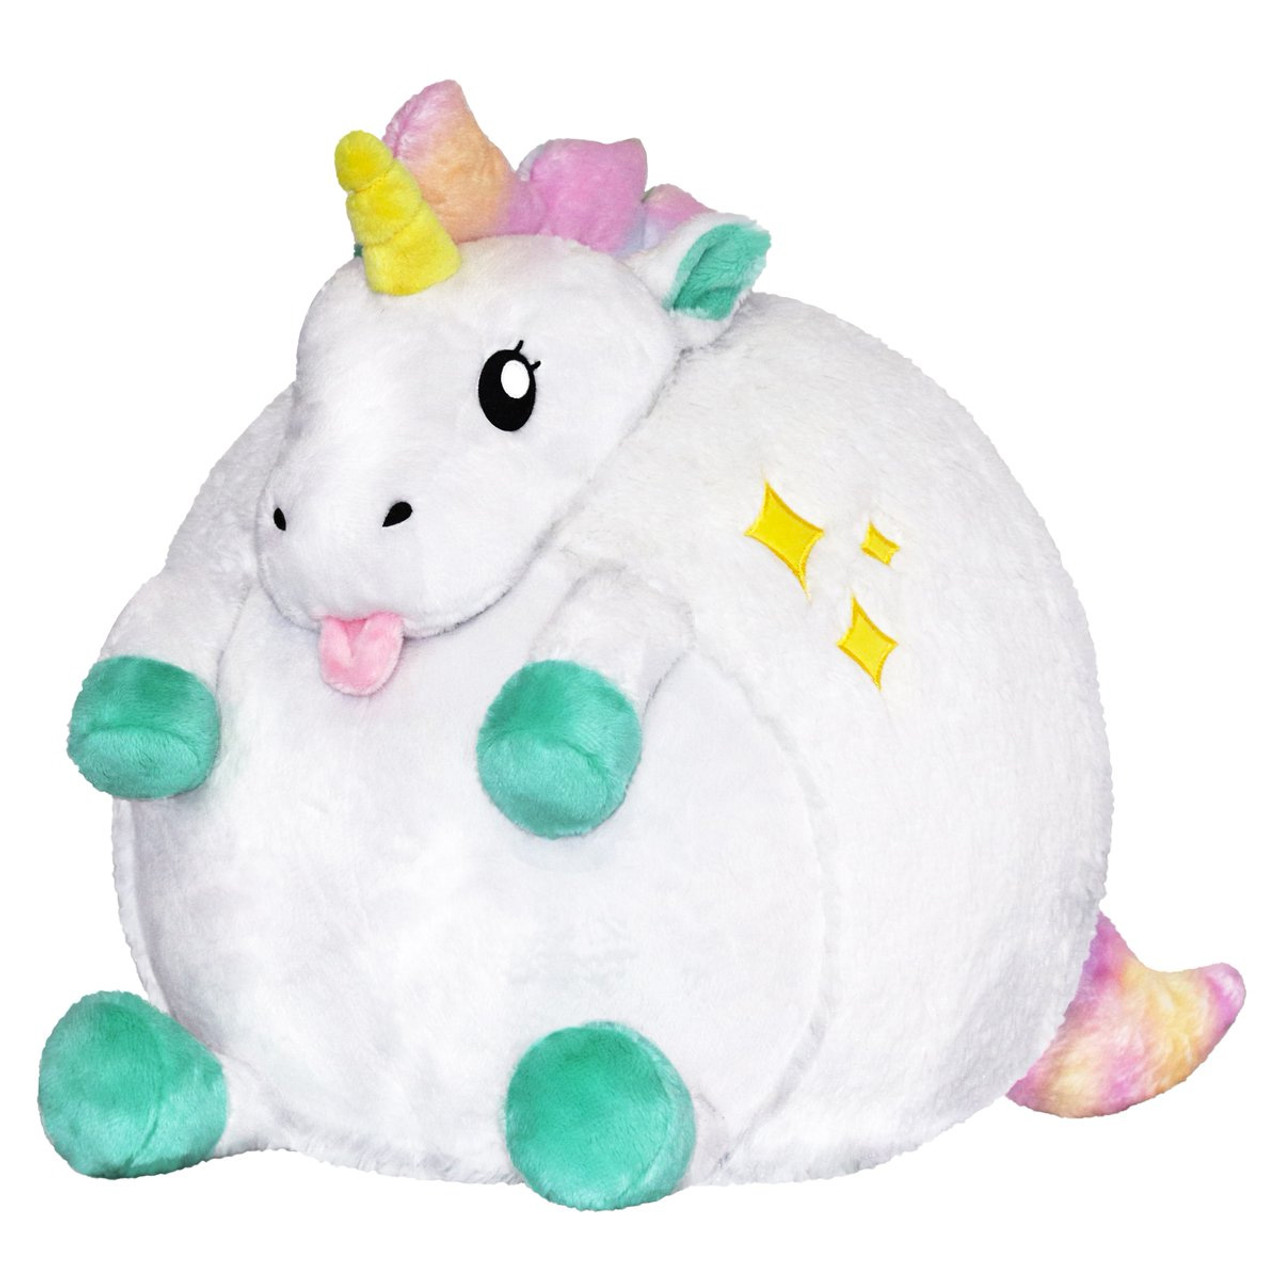 Baby Unicorn Squishable